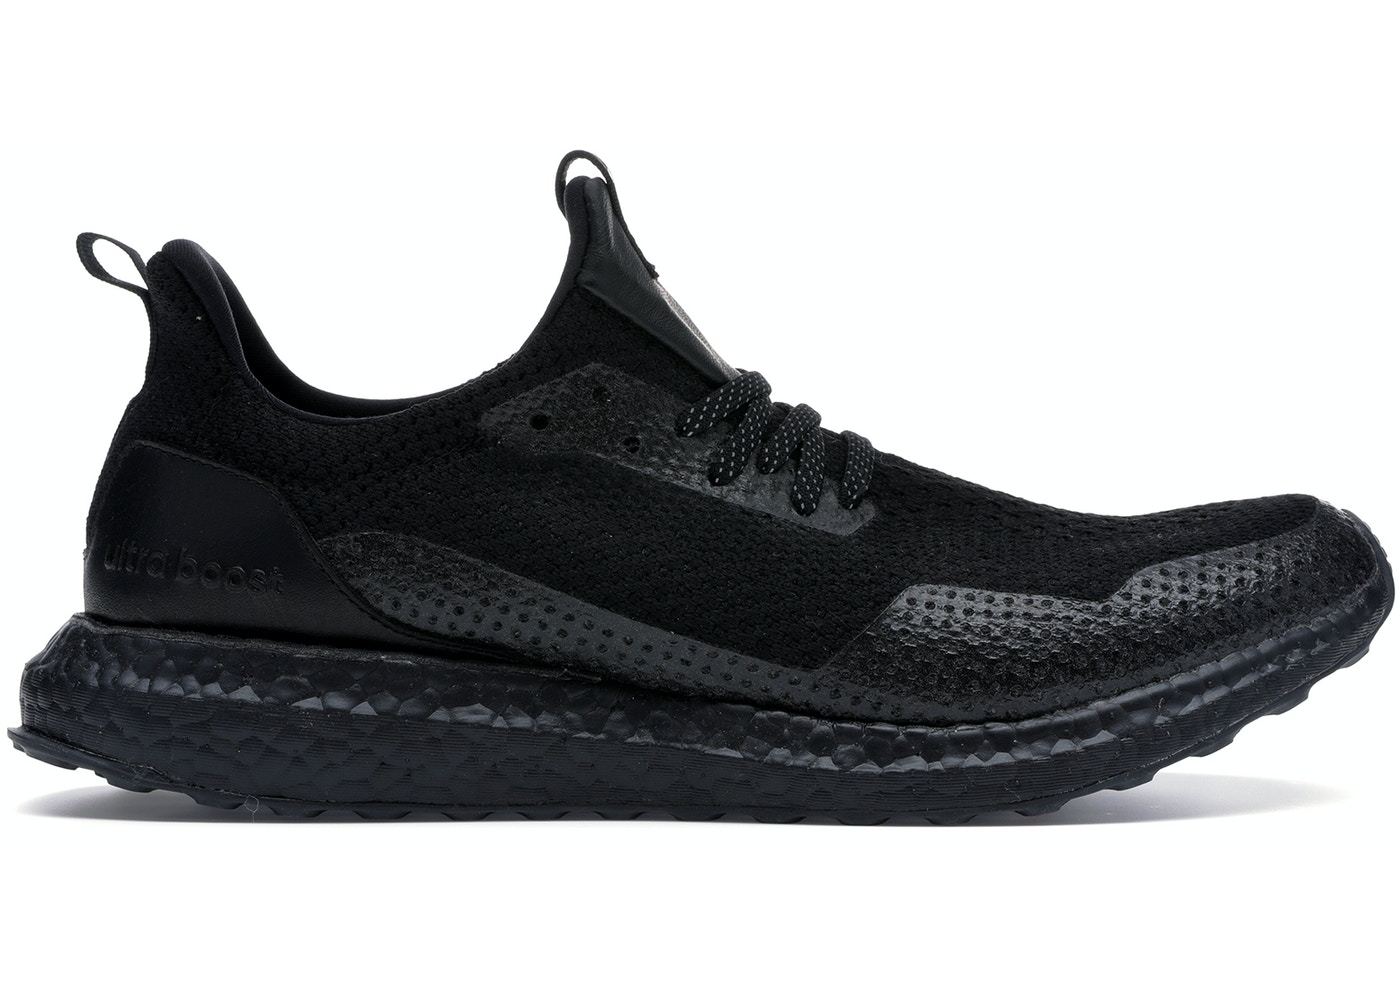 494c233bc74 adidas Ultra Boost Uncaged Haven Triple Black - BY2638